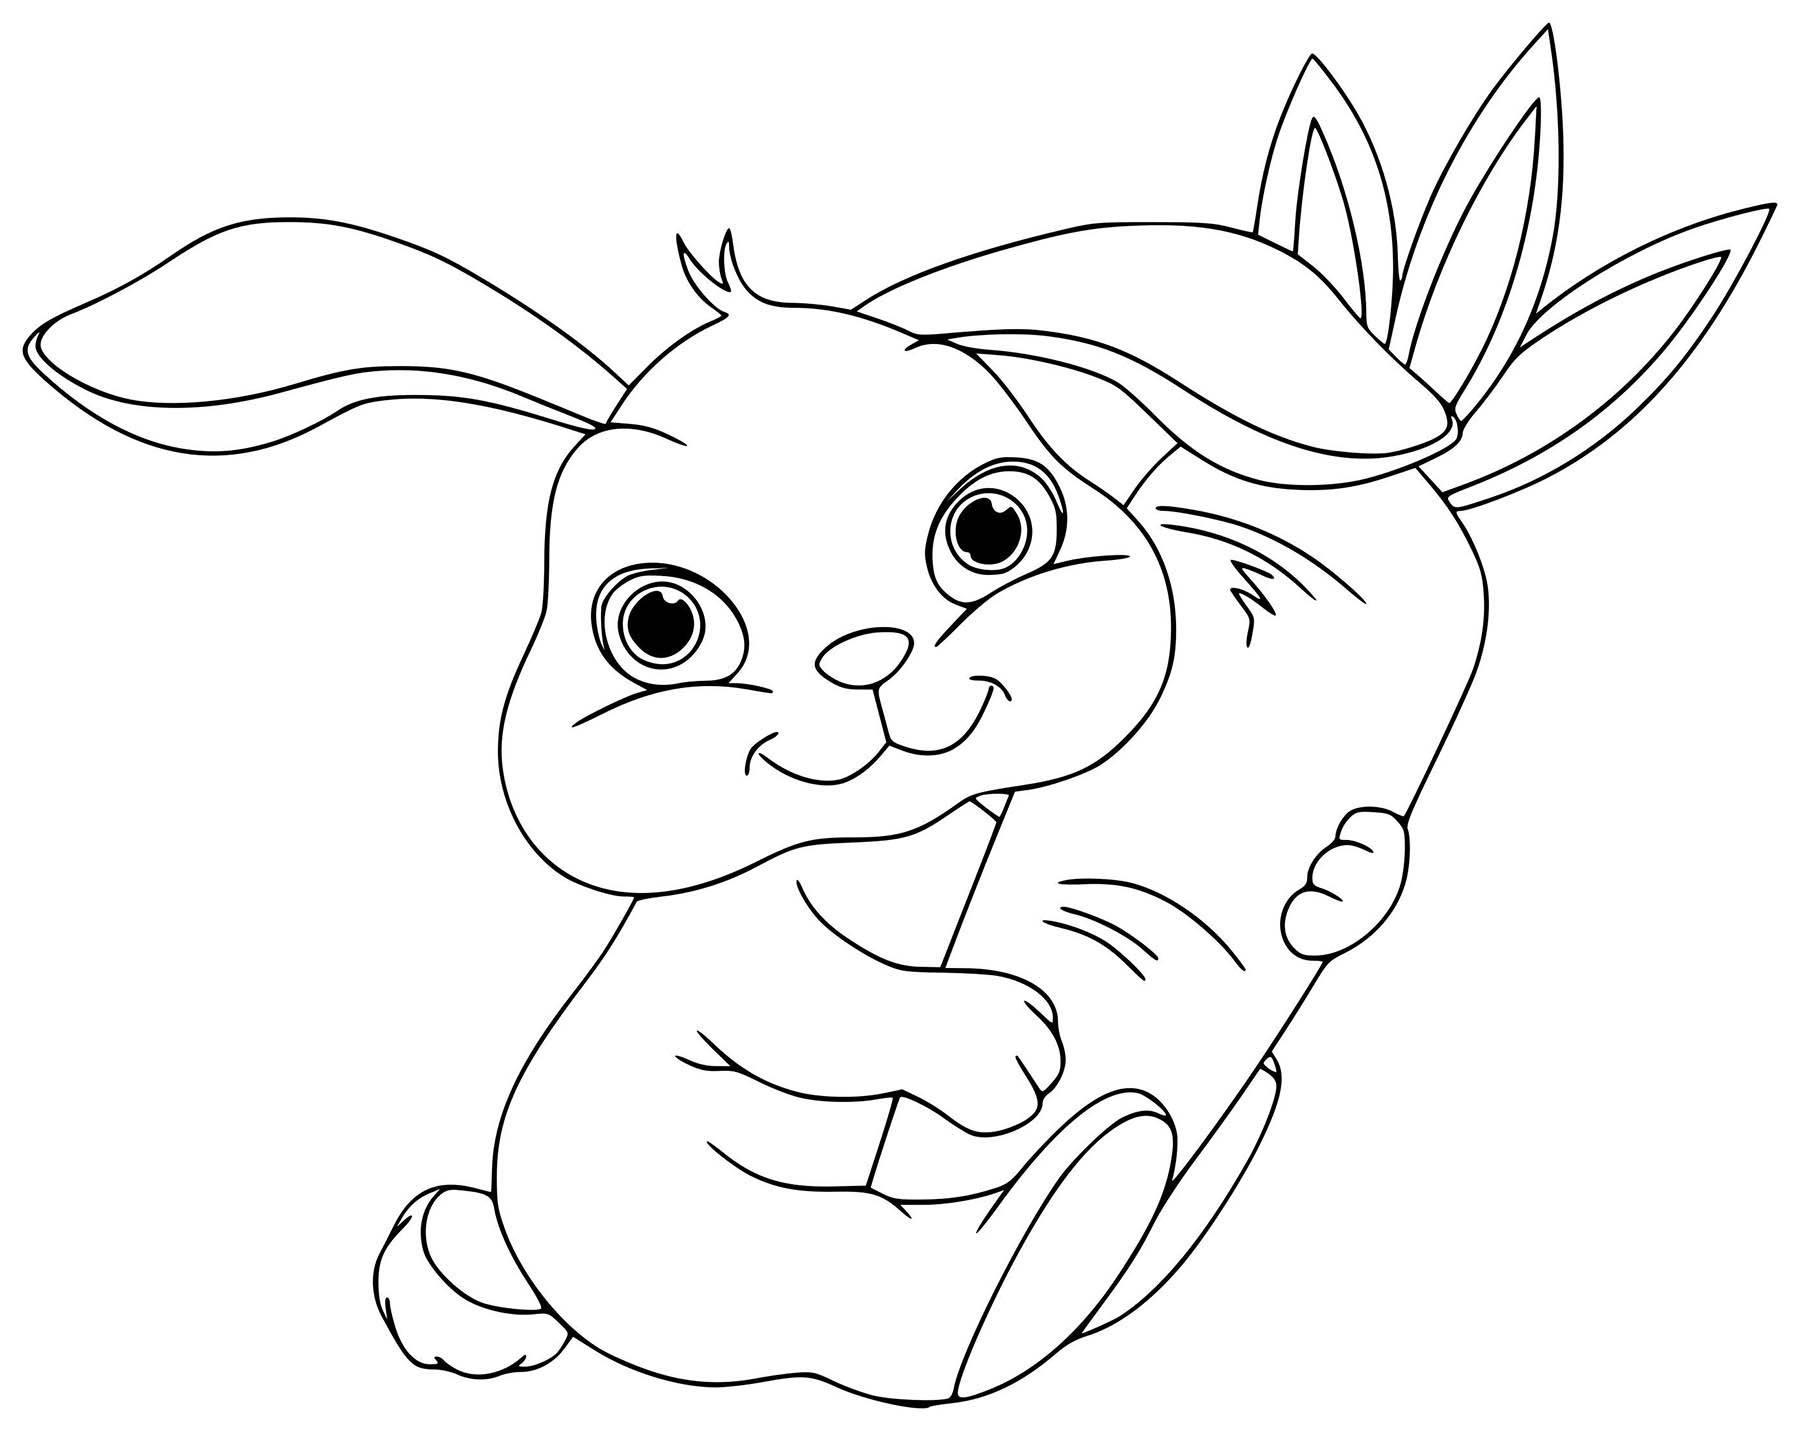 picture of a rabbit to color real bunny coloring pages download and print for free of picture color to a rabbit